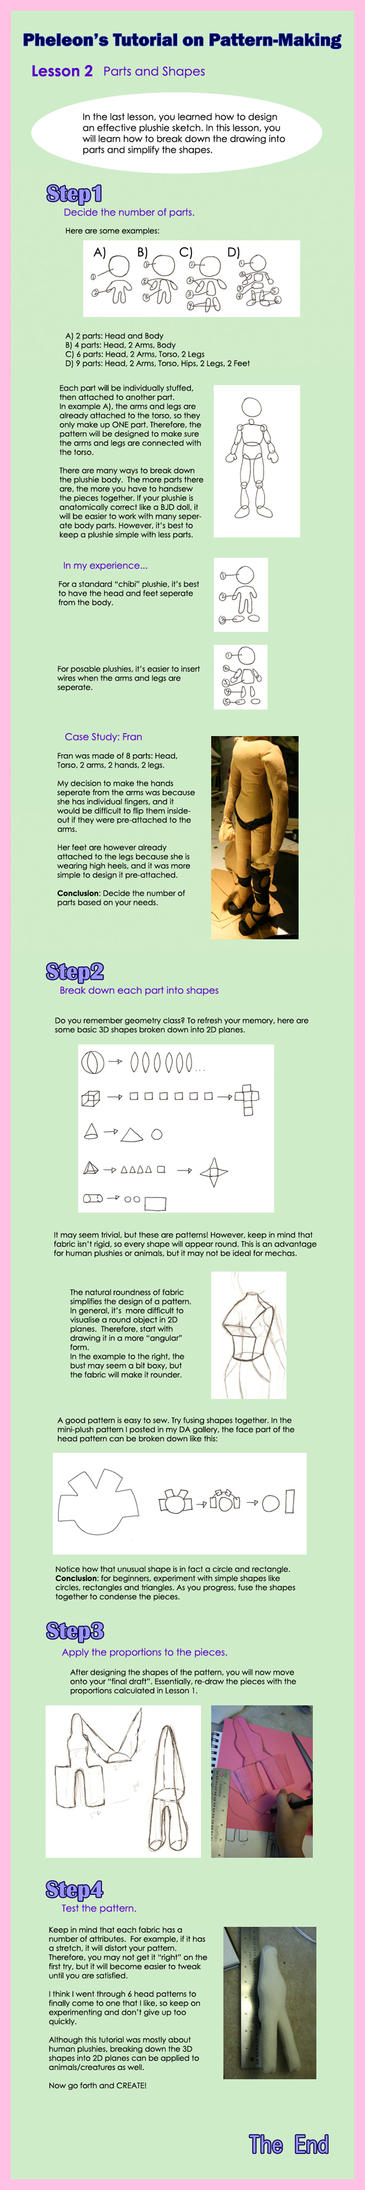 How to make patterns- Lesson 2 by pheleon